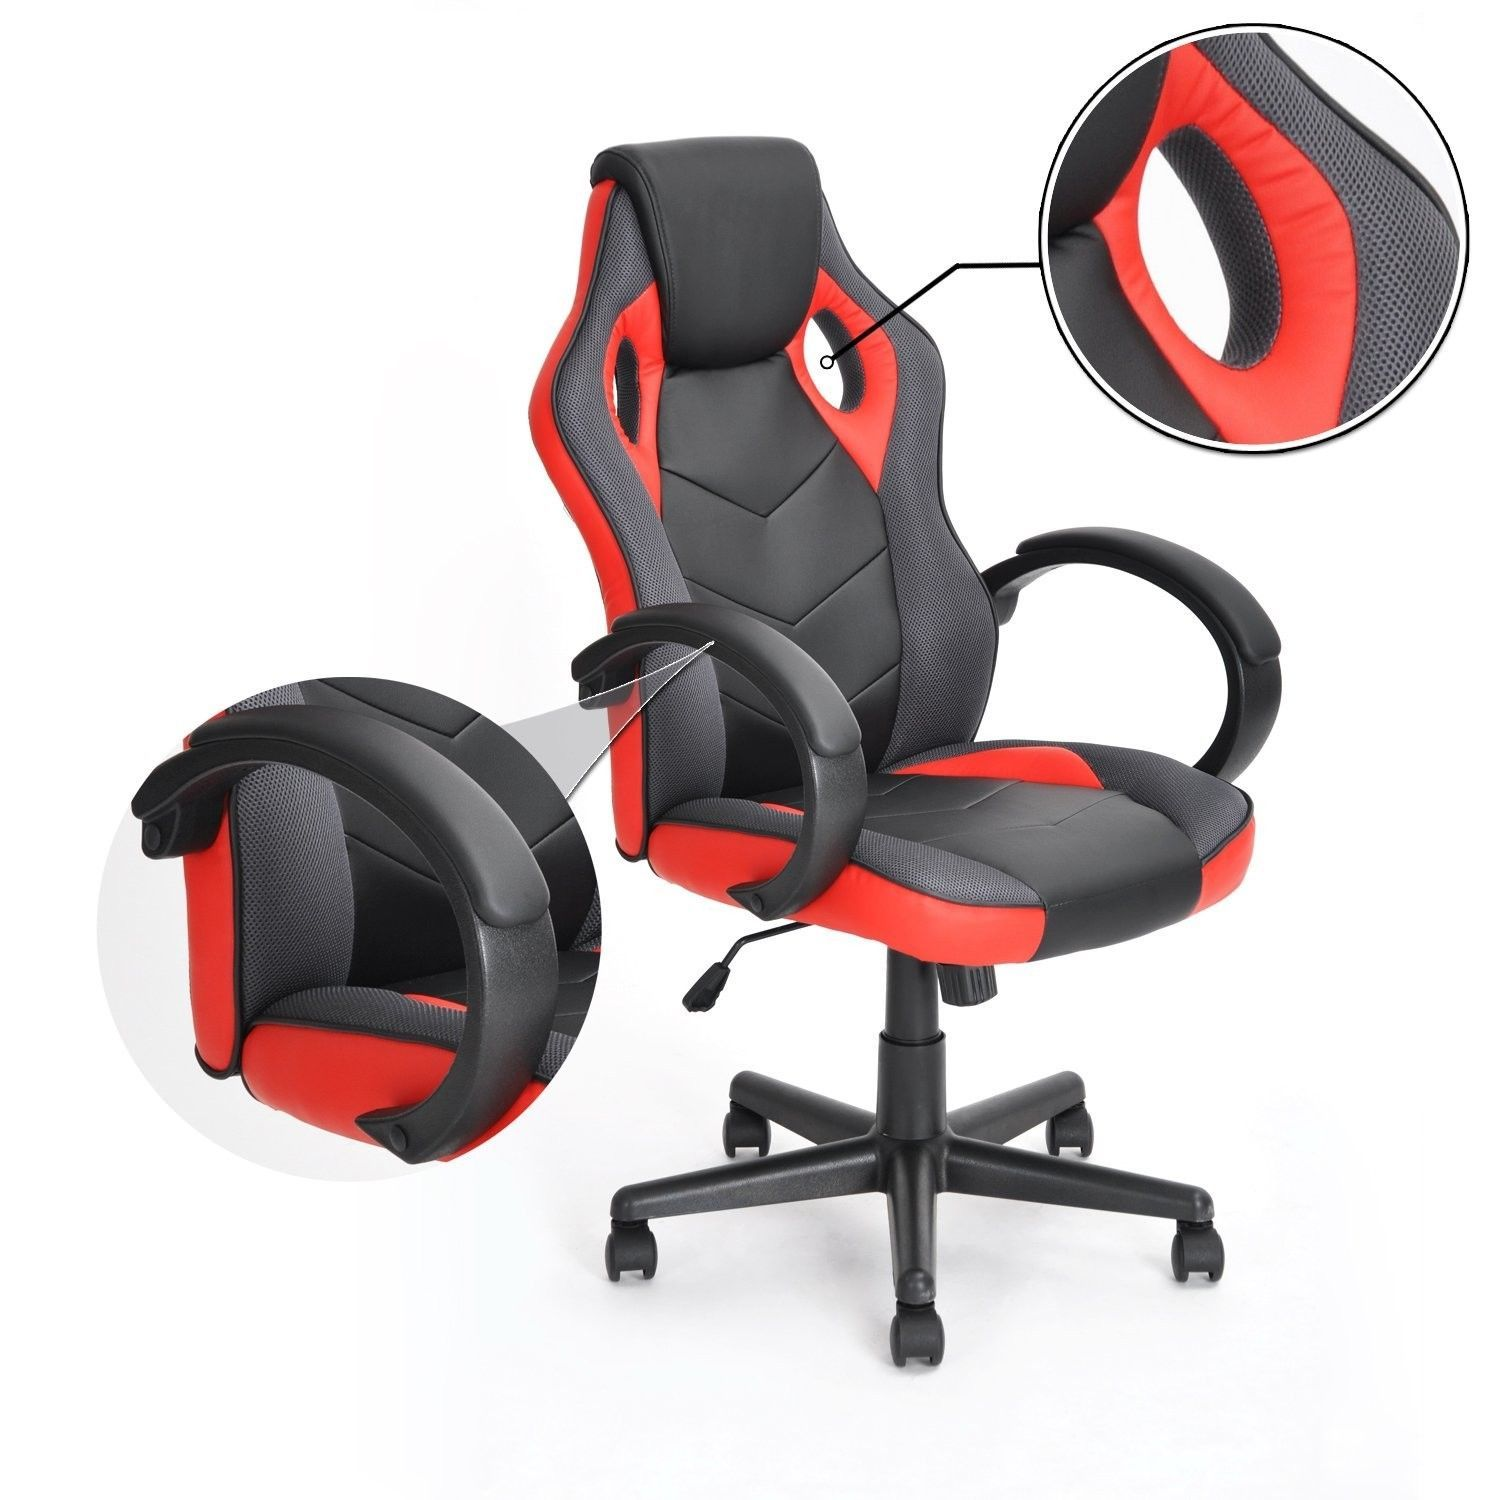 Miraculous My Ebay Active Okc Computer Desk Chair Red Office Chair Pdpeps Interior Chair Design Pdpepsorg